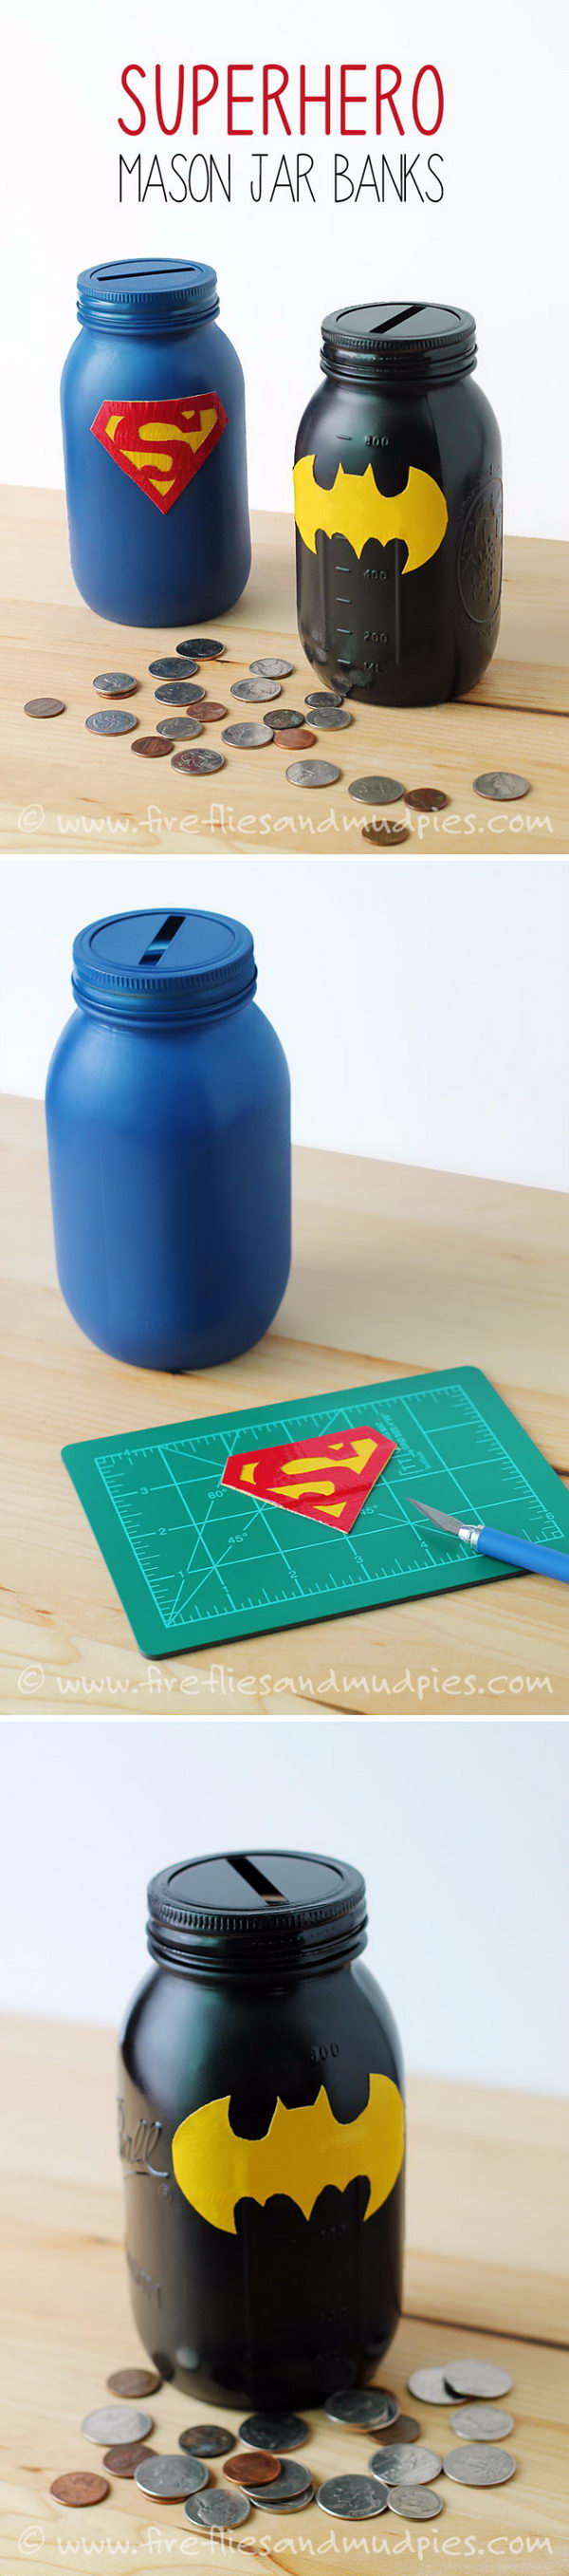 Mason Jar Superhero Banks.